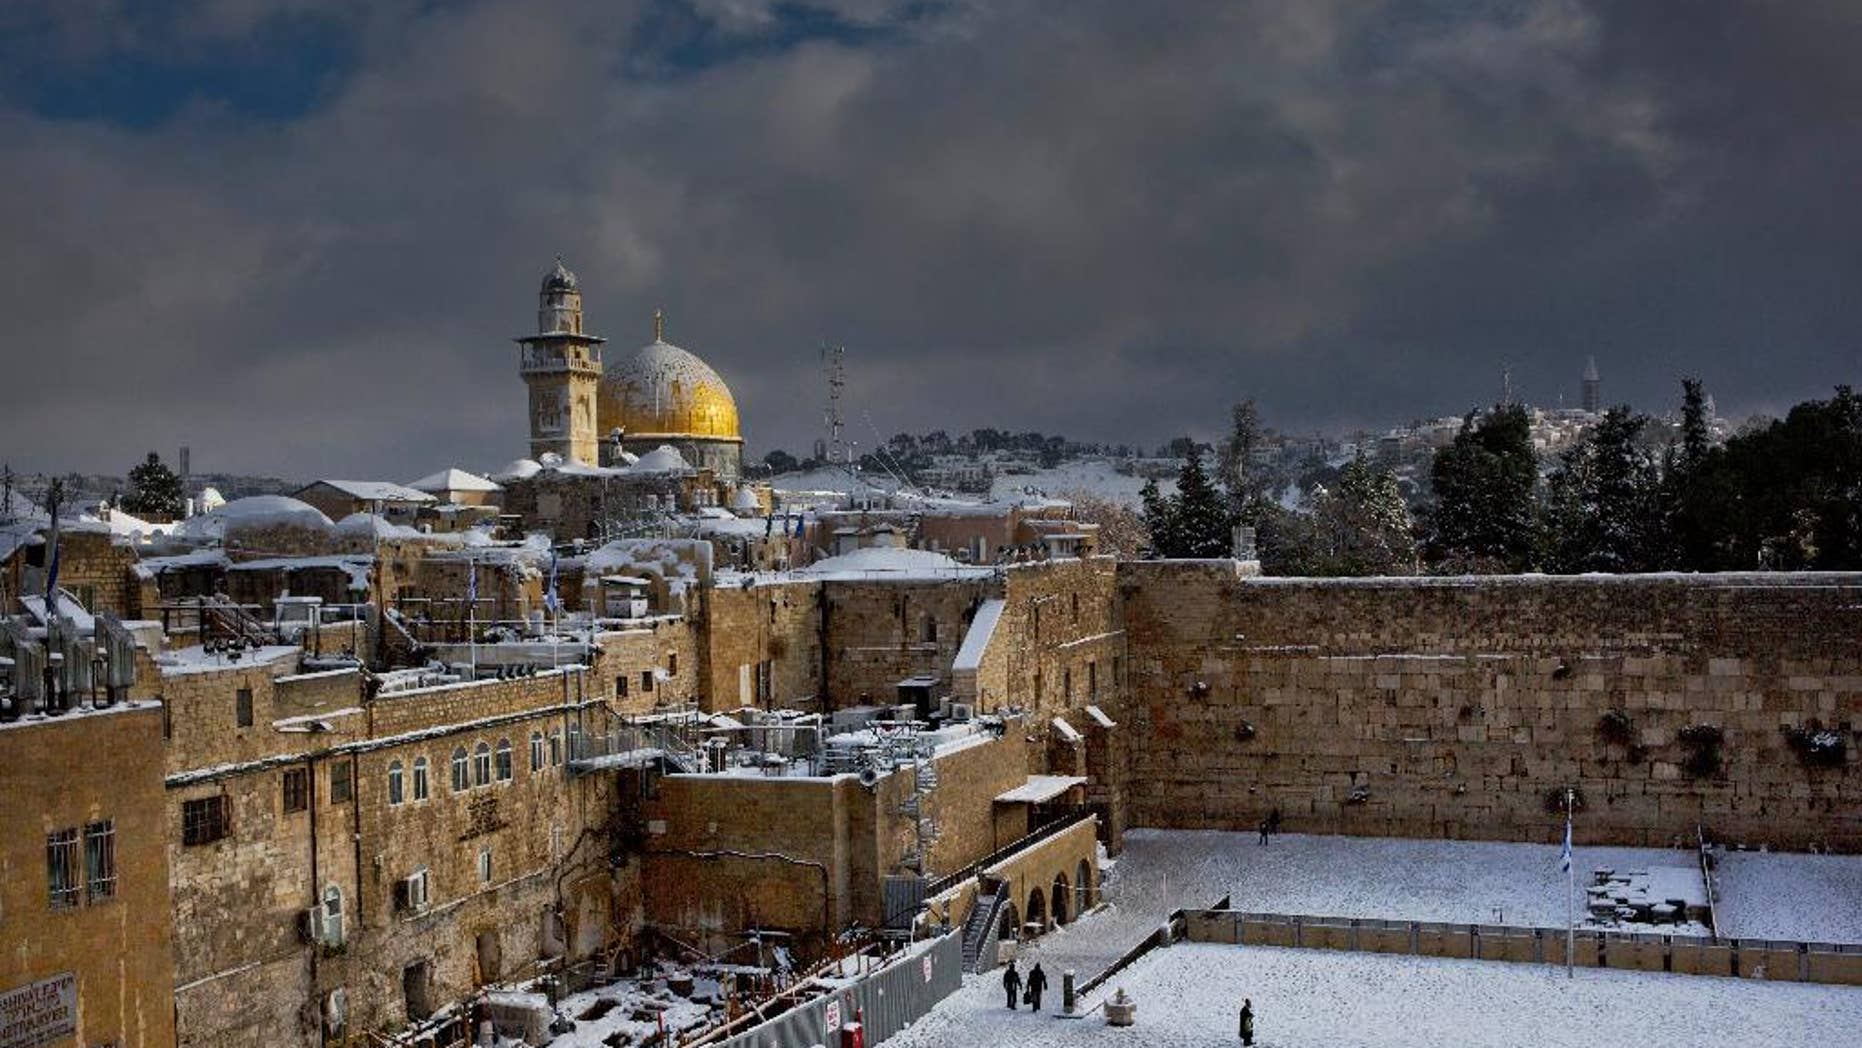 FILE - In this Dec. 13, 2013 file photo, the Western Wall, right, and the gilded Dome of the Rock, among the holiest sites for Jews and Muslims, are covered in snow. Two Palestinians stormed a Jerusalem synagogue on Tuesday, Nov. 18, 2014 attacking worshippers praying inside with knives, axes and guns, and killing four people before they were killed in a shootout with police, officials said. (AP Photo/Dusan Vranic, File)